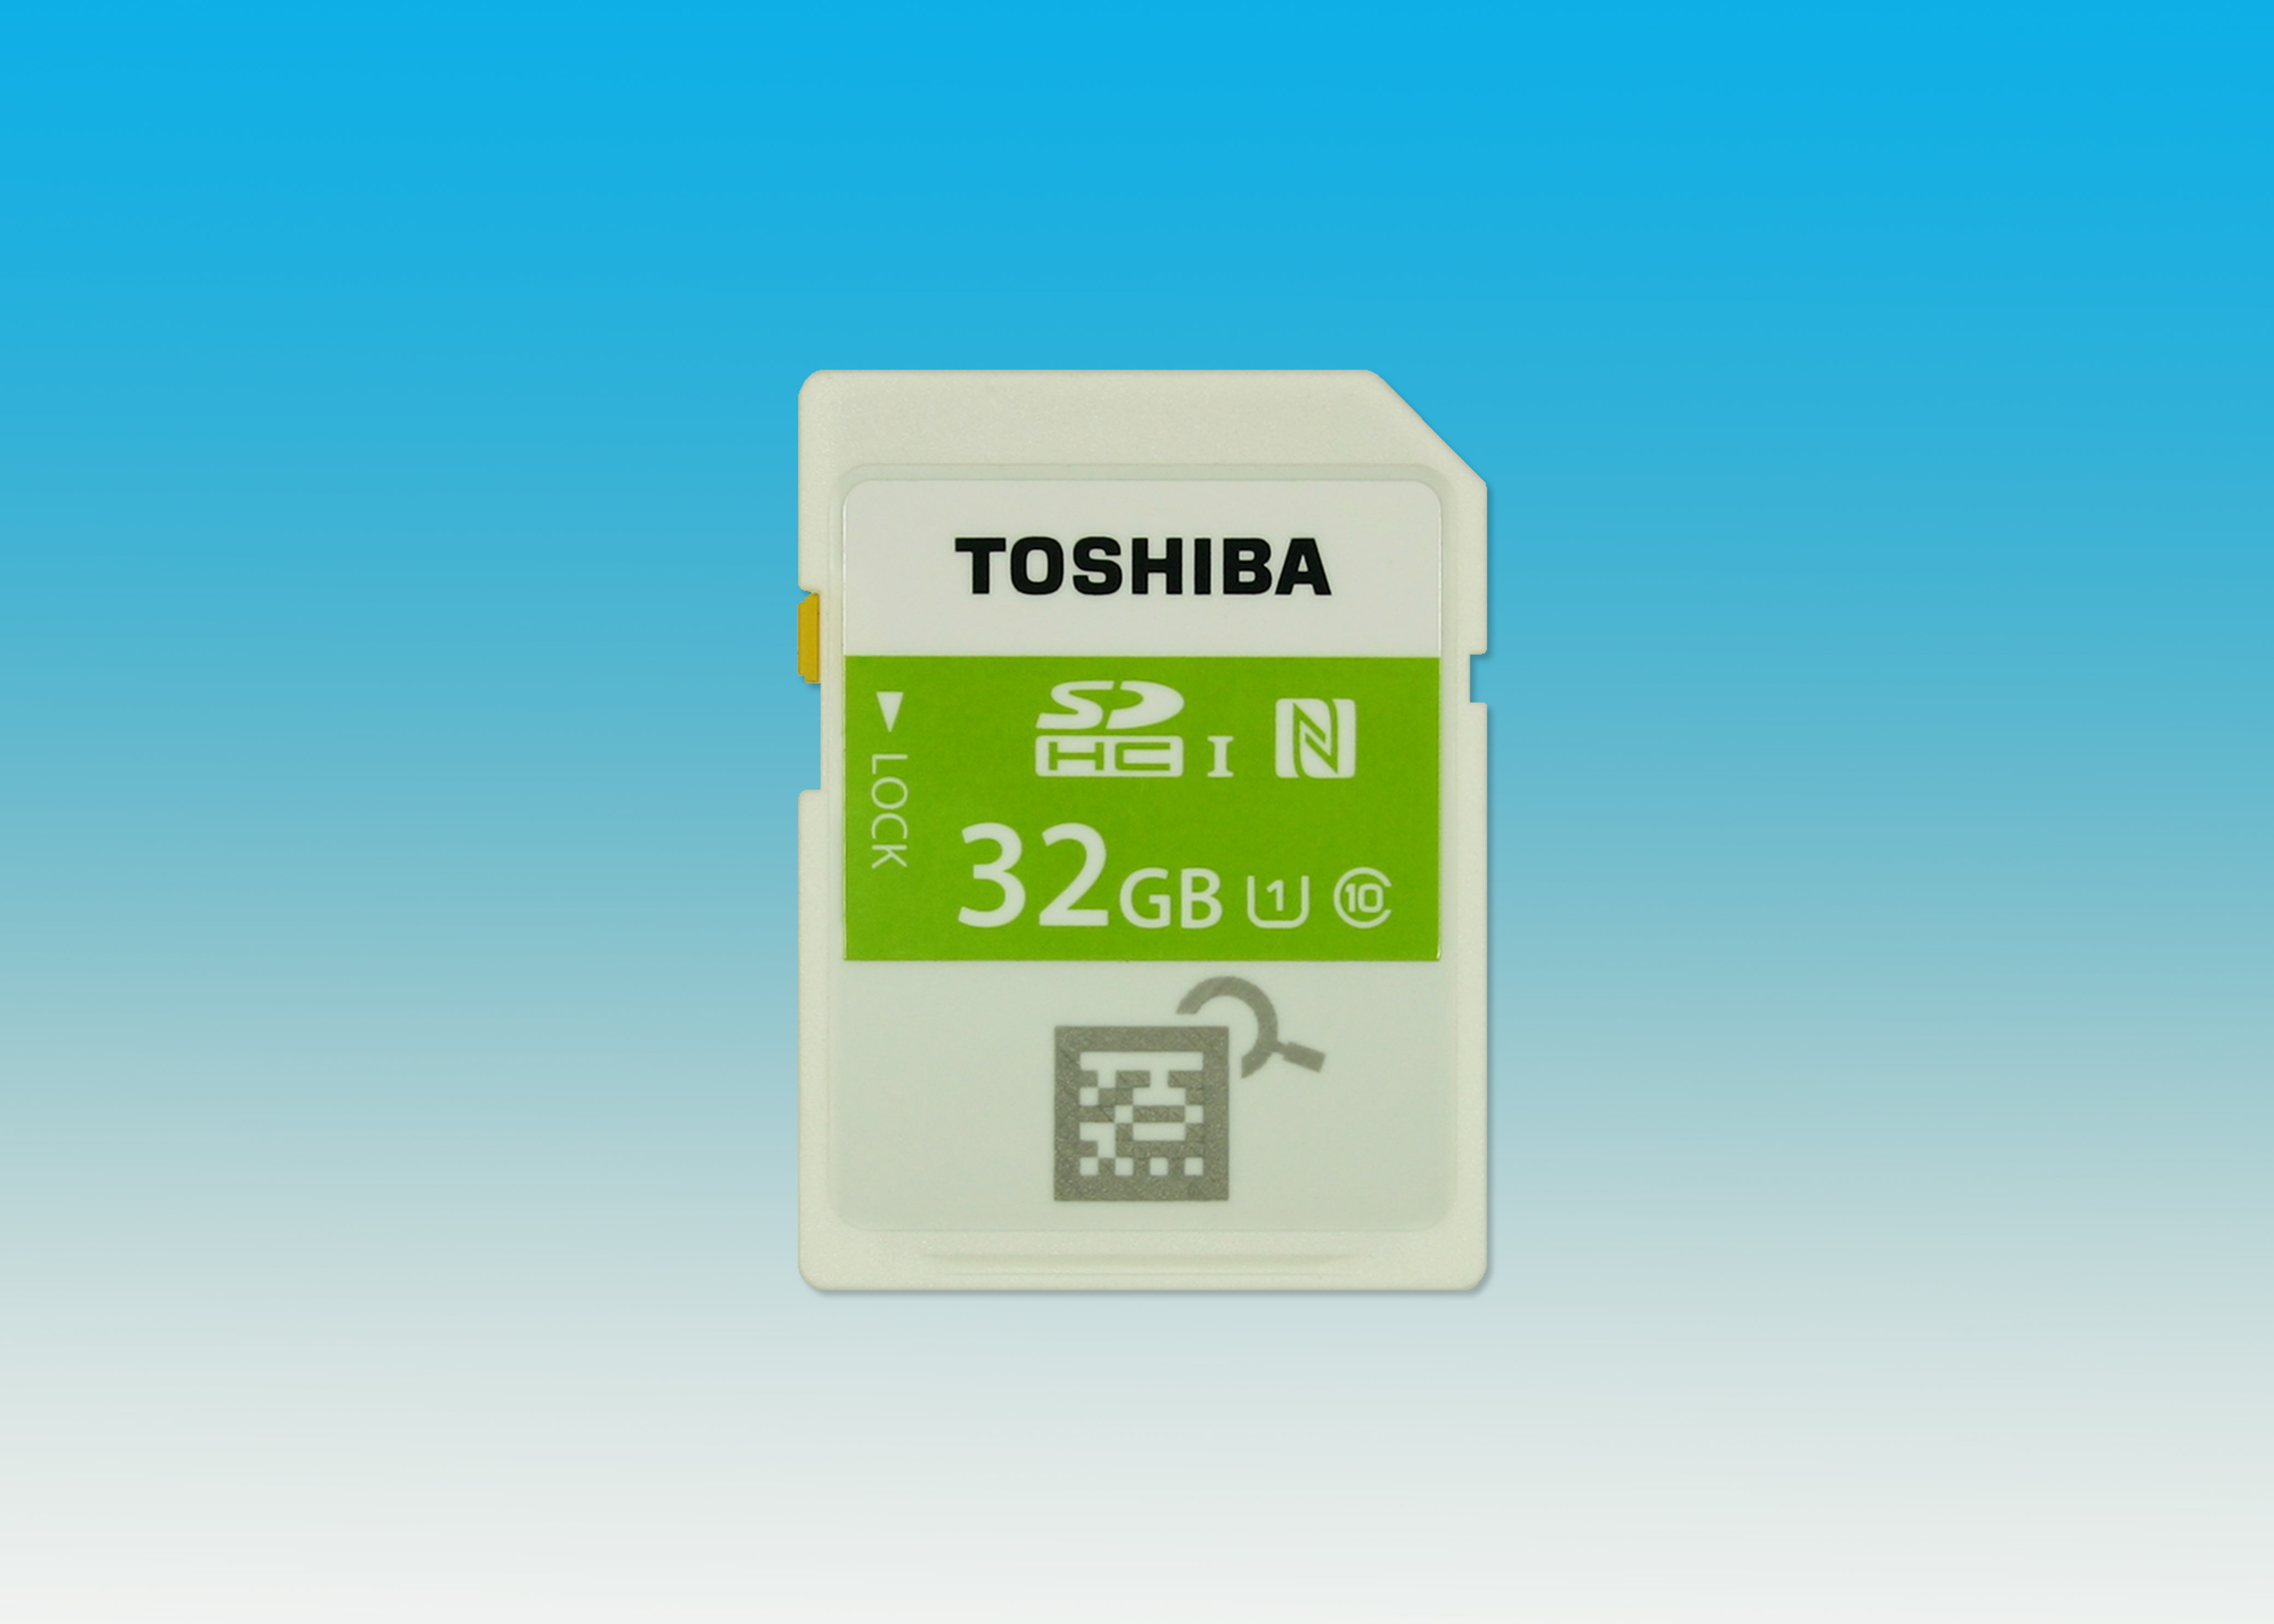 Toshiba: World's First NFC Built-in SDHC Memory Card (Photo: Business Wire)